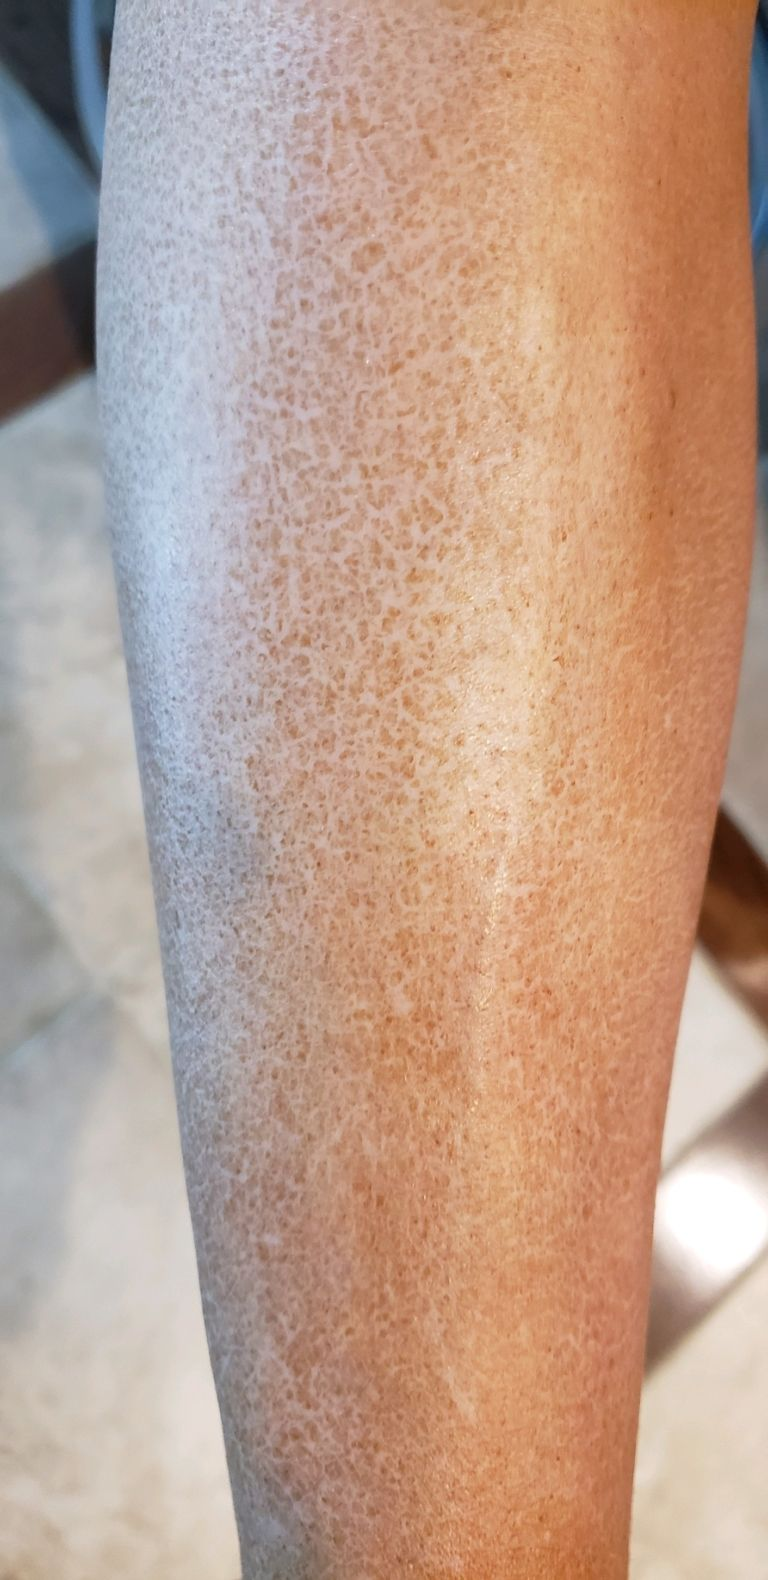 Why is my spray tan all Crackly looking? Tampa Bay Tan